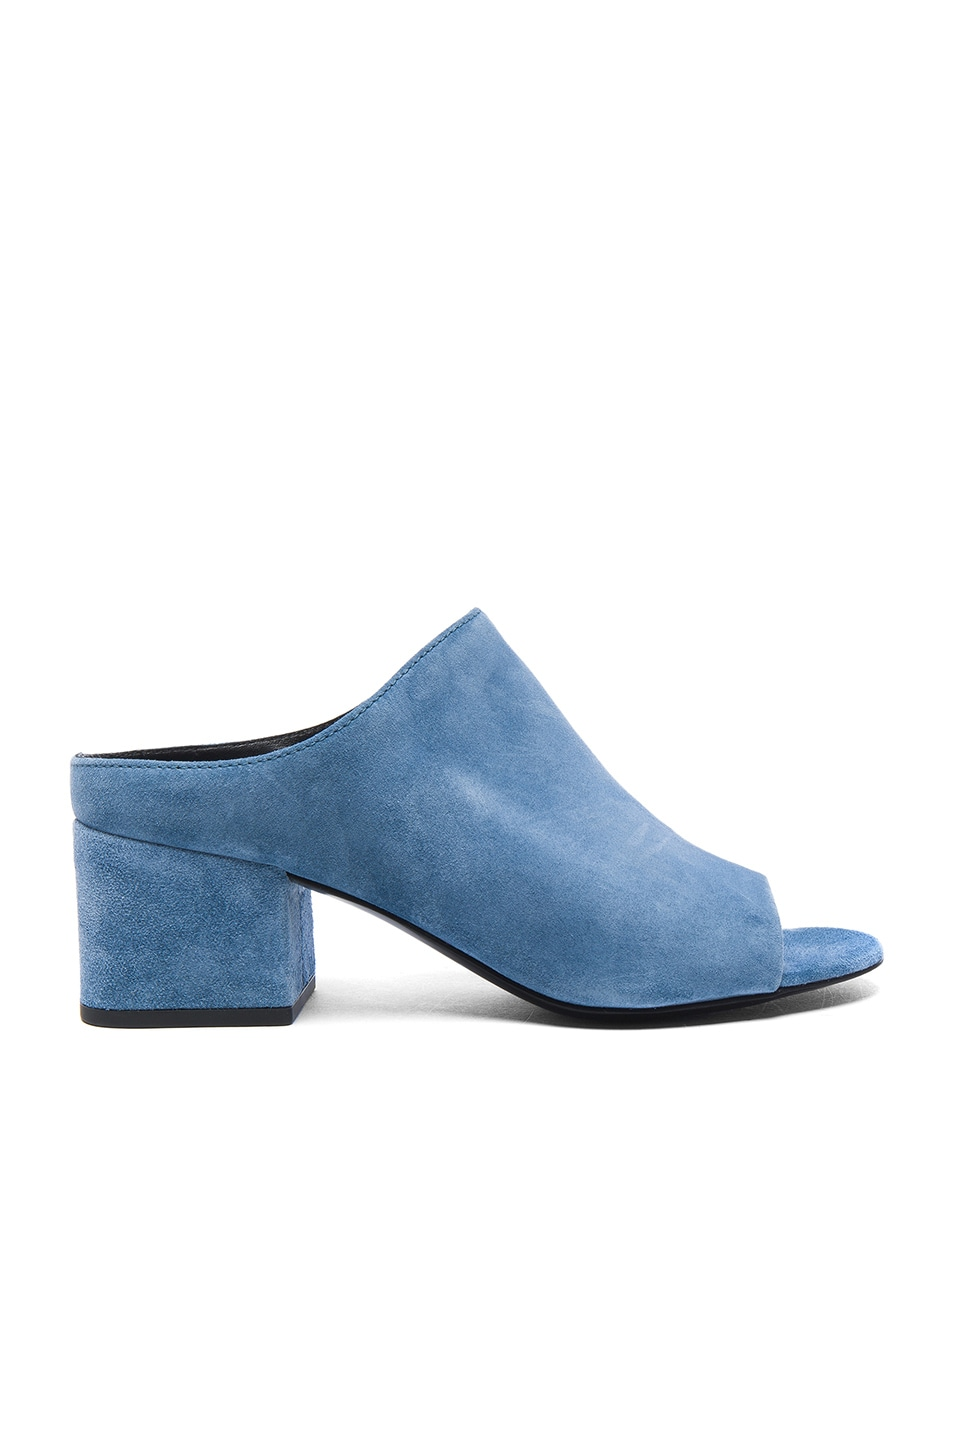 Image 1 of 3.1 phillip lim Suede Cube Open Toe Slip Ons in French Blue